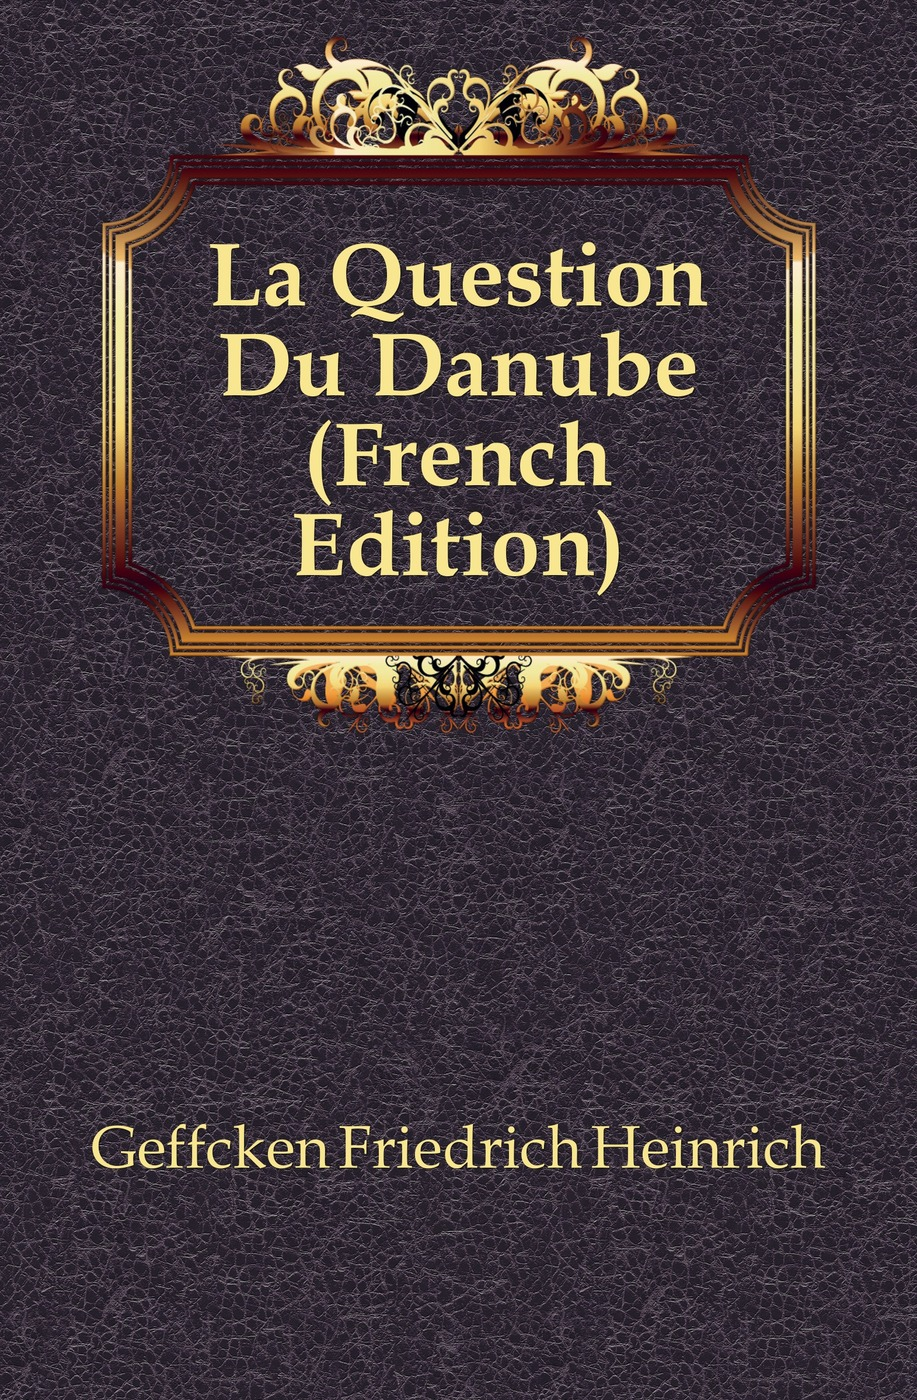 Geffcken Friedrich Heinrich La Question Du Danube (French Edition) geffcken friedrich heinrich leon xiii devant l allemagne french edition